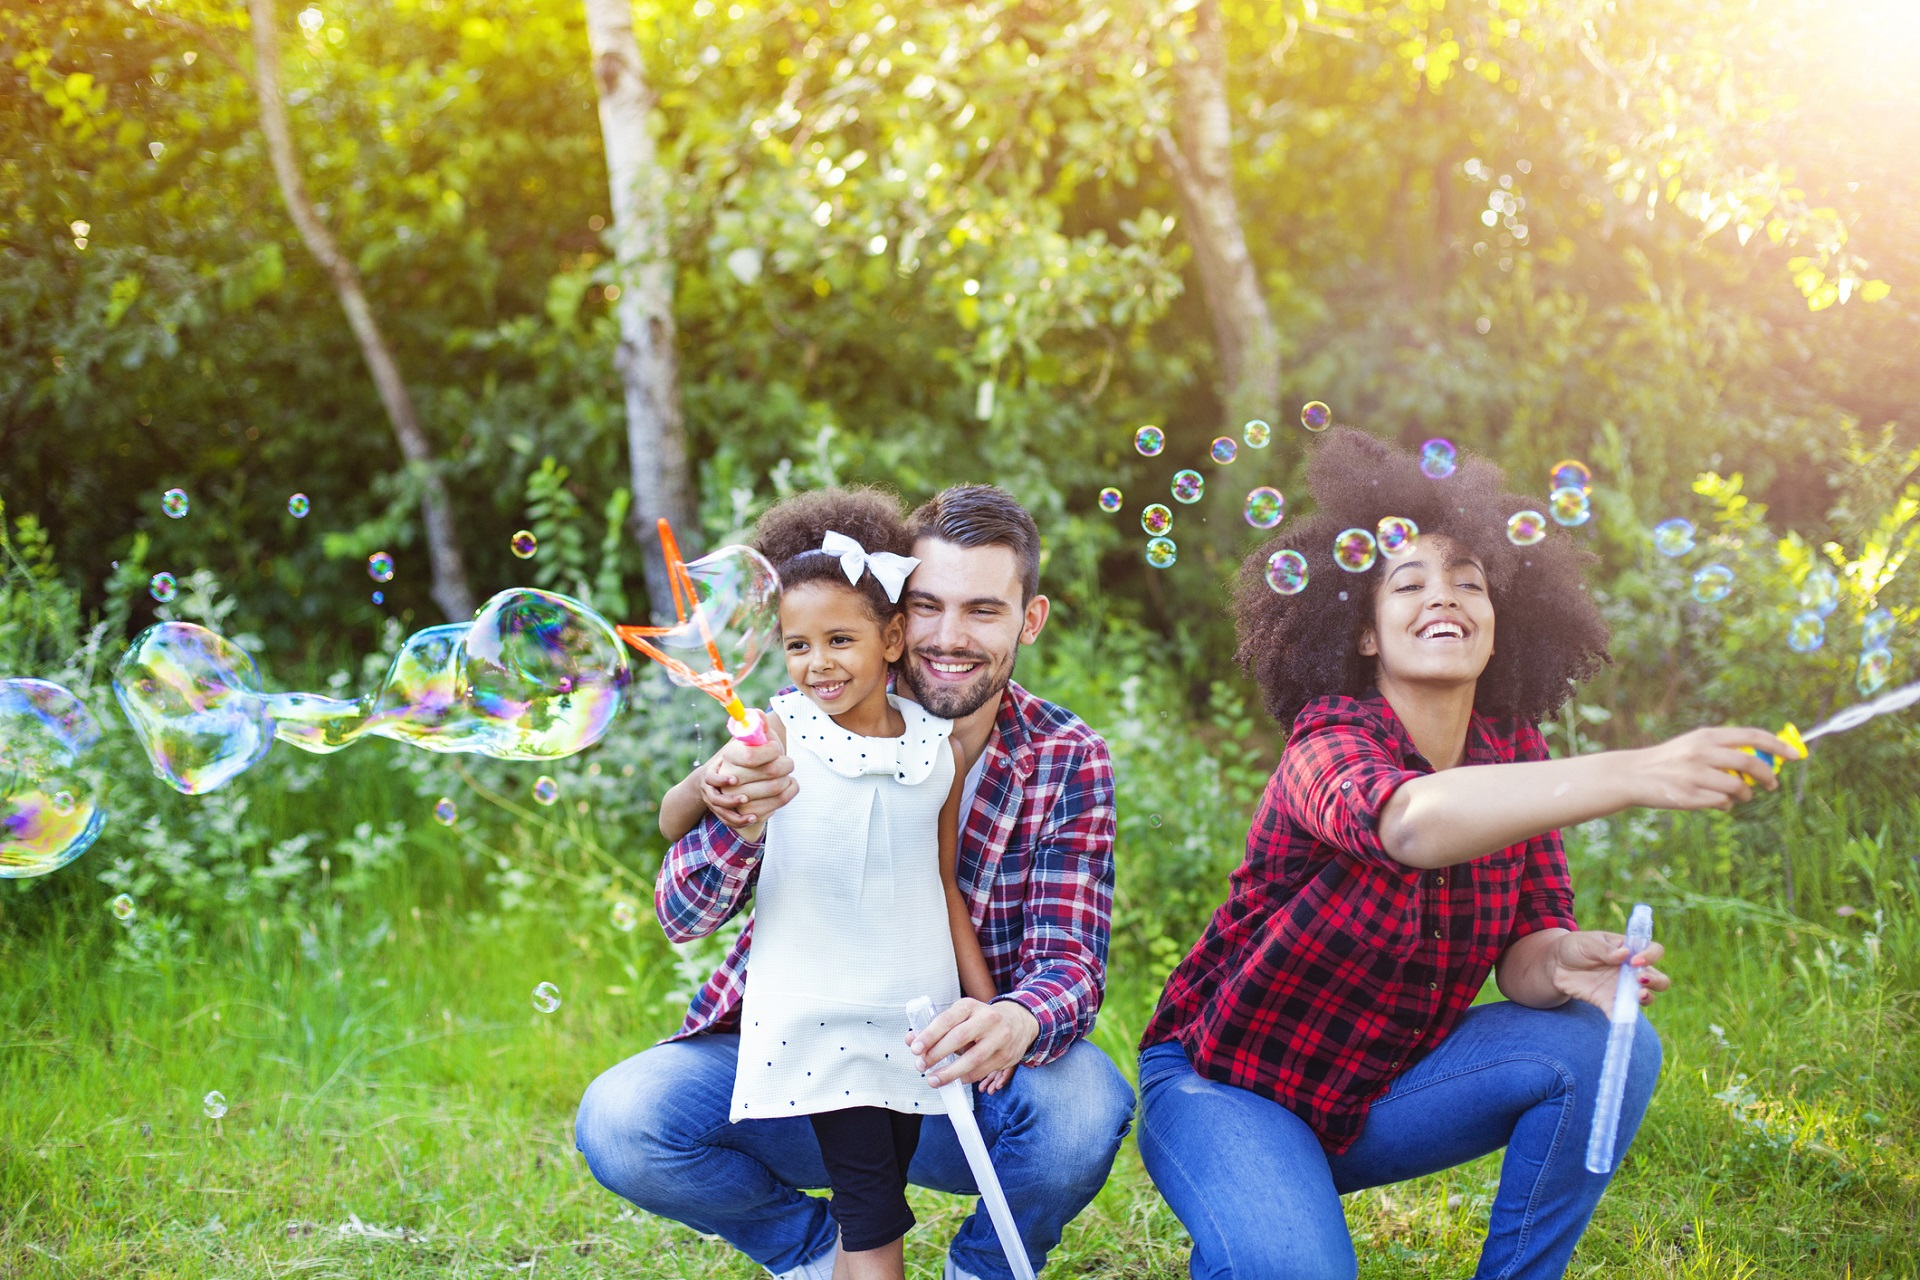 Celebrate Easter with these fun family activities